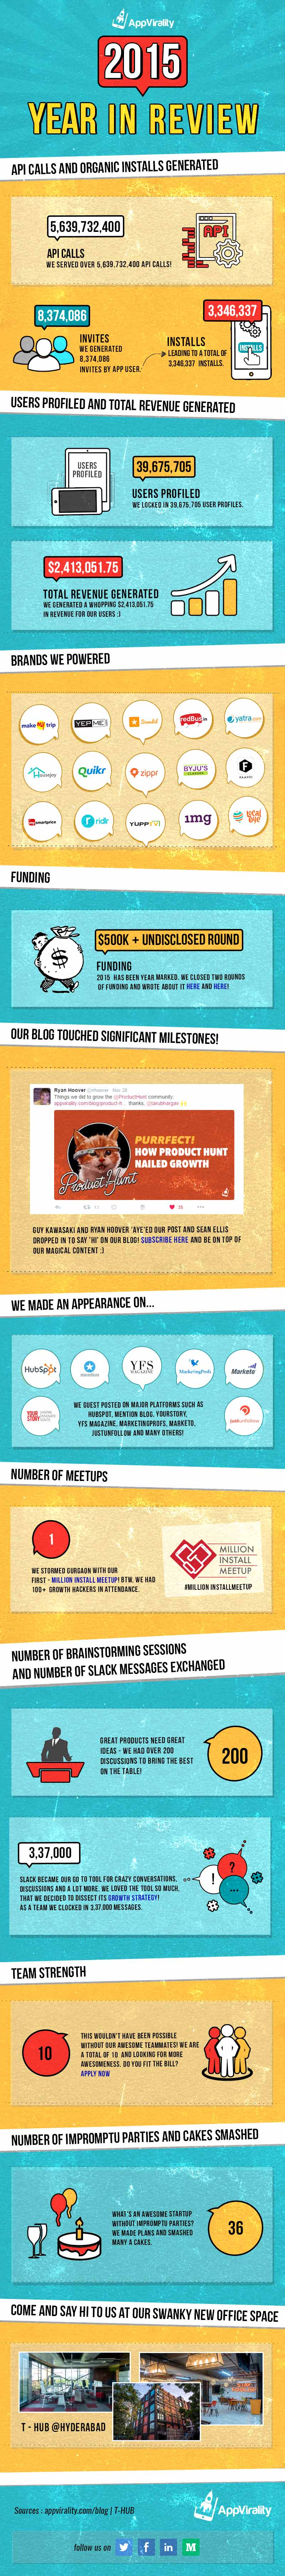 infographic s year in review app virality last thoughts of 2015